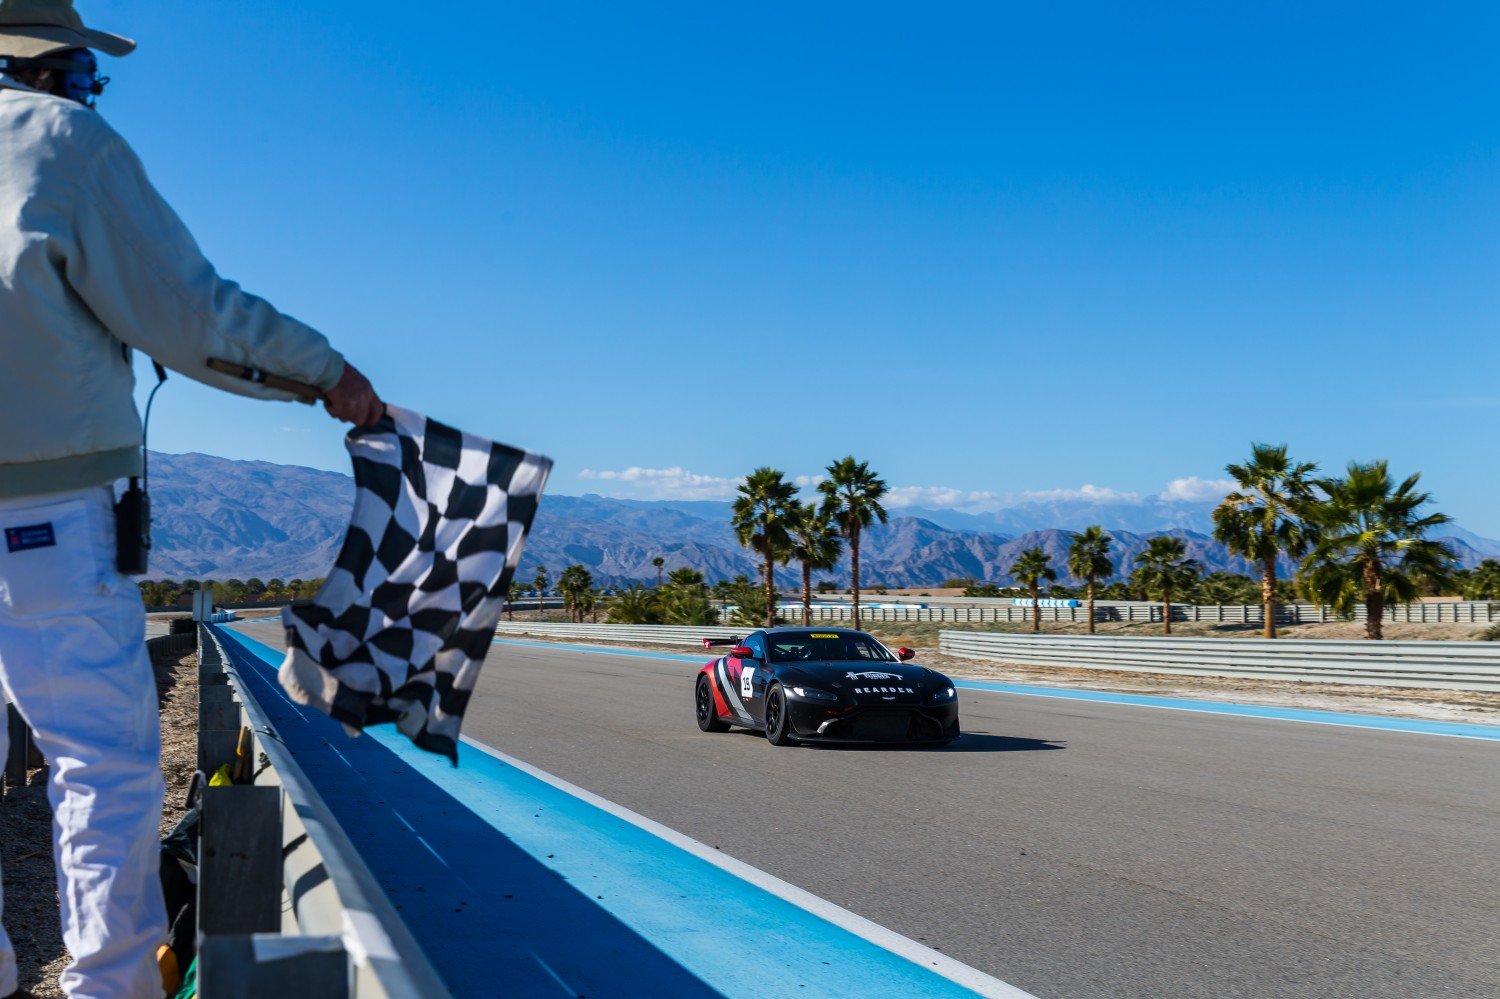 GT Sports Club and GT4 Run Groups - 2019 Winter Invitational at The Thermal Club, Dec 13-15, 2019 - Thermal, Calif.